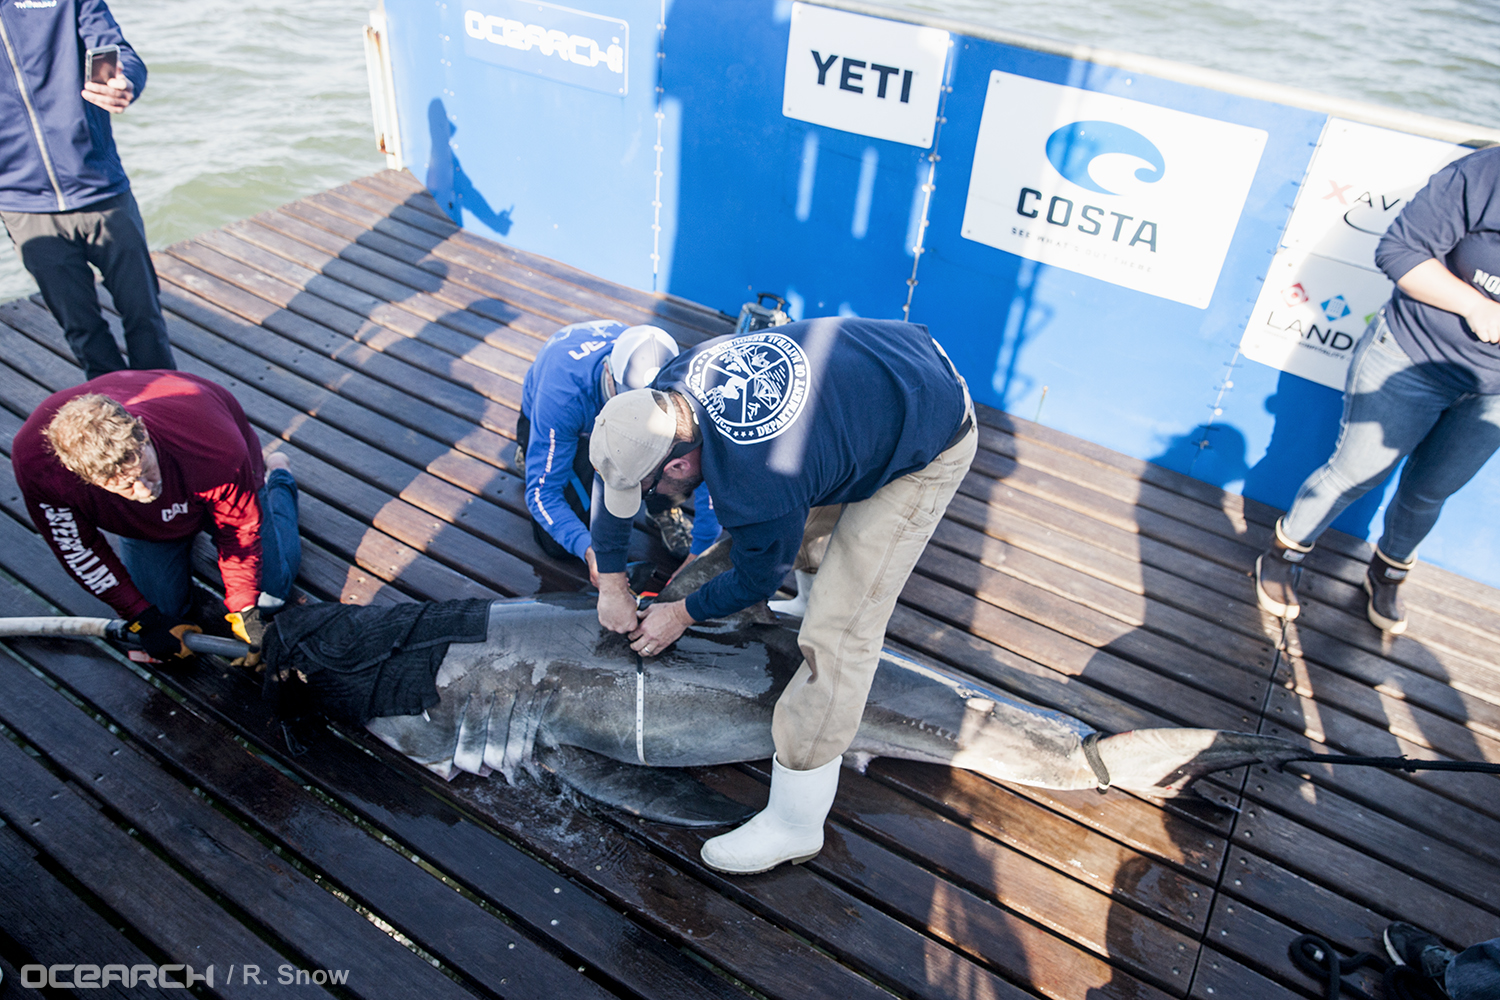 Frazier takes body measurements for white shark Savannah. (Photo: OCEARCH/R. Snow)